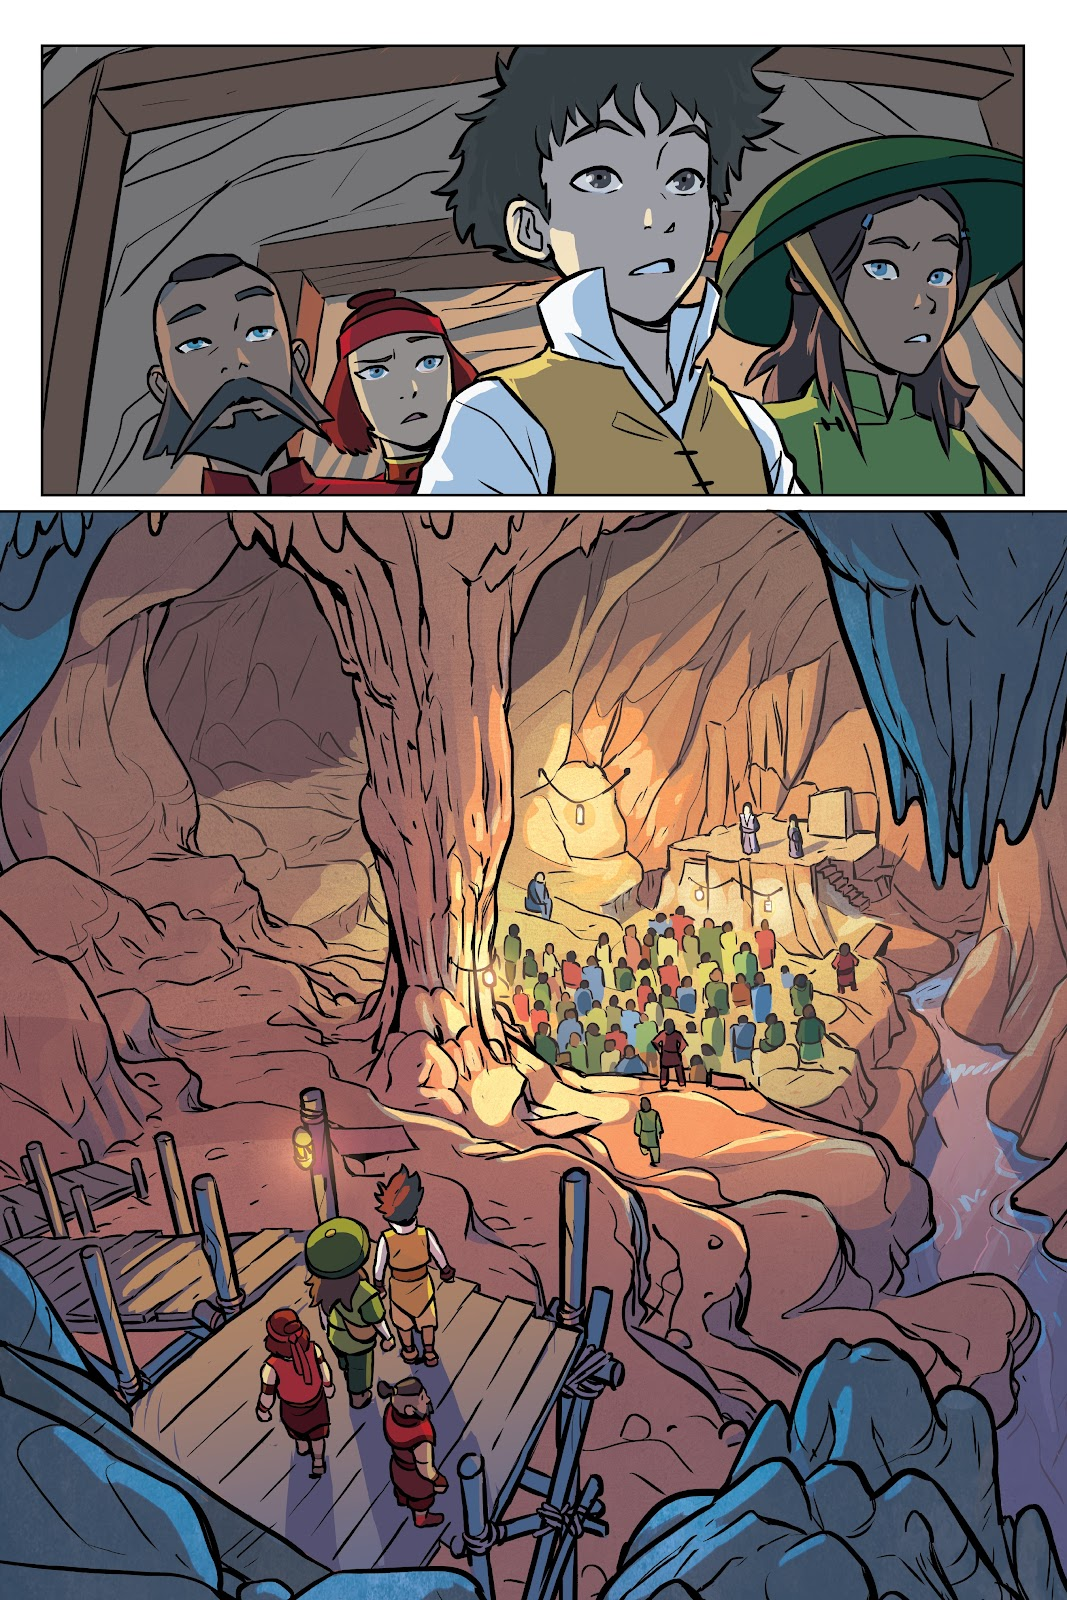 Read online Nickelodeon Avatar: The Last Airbender - Imbalance comic -  Issue # TPB 2 - 44